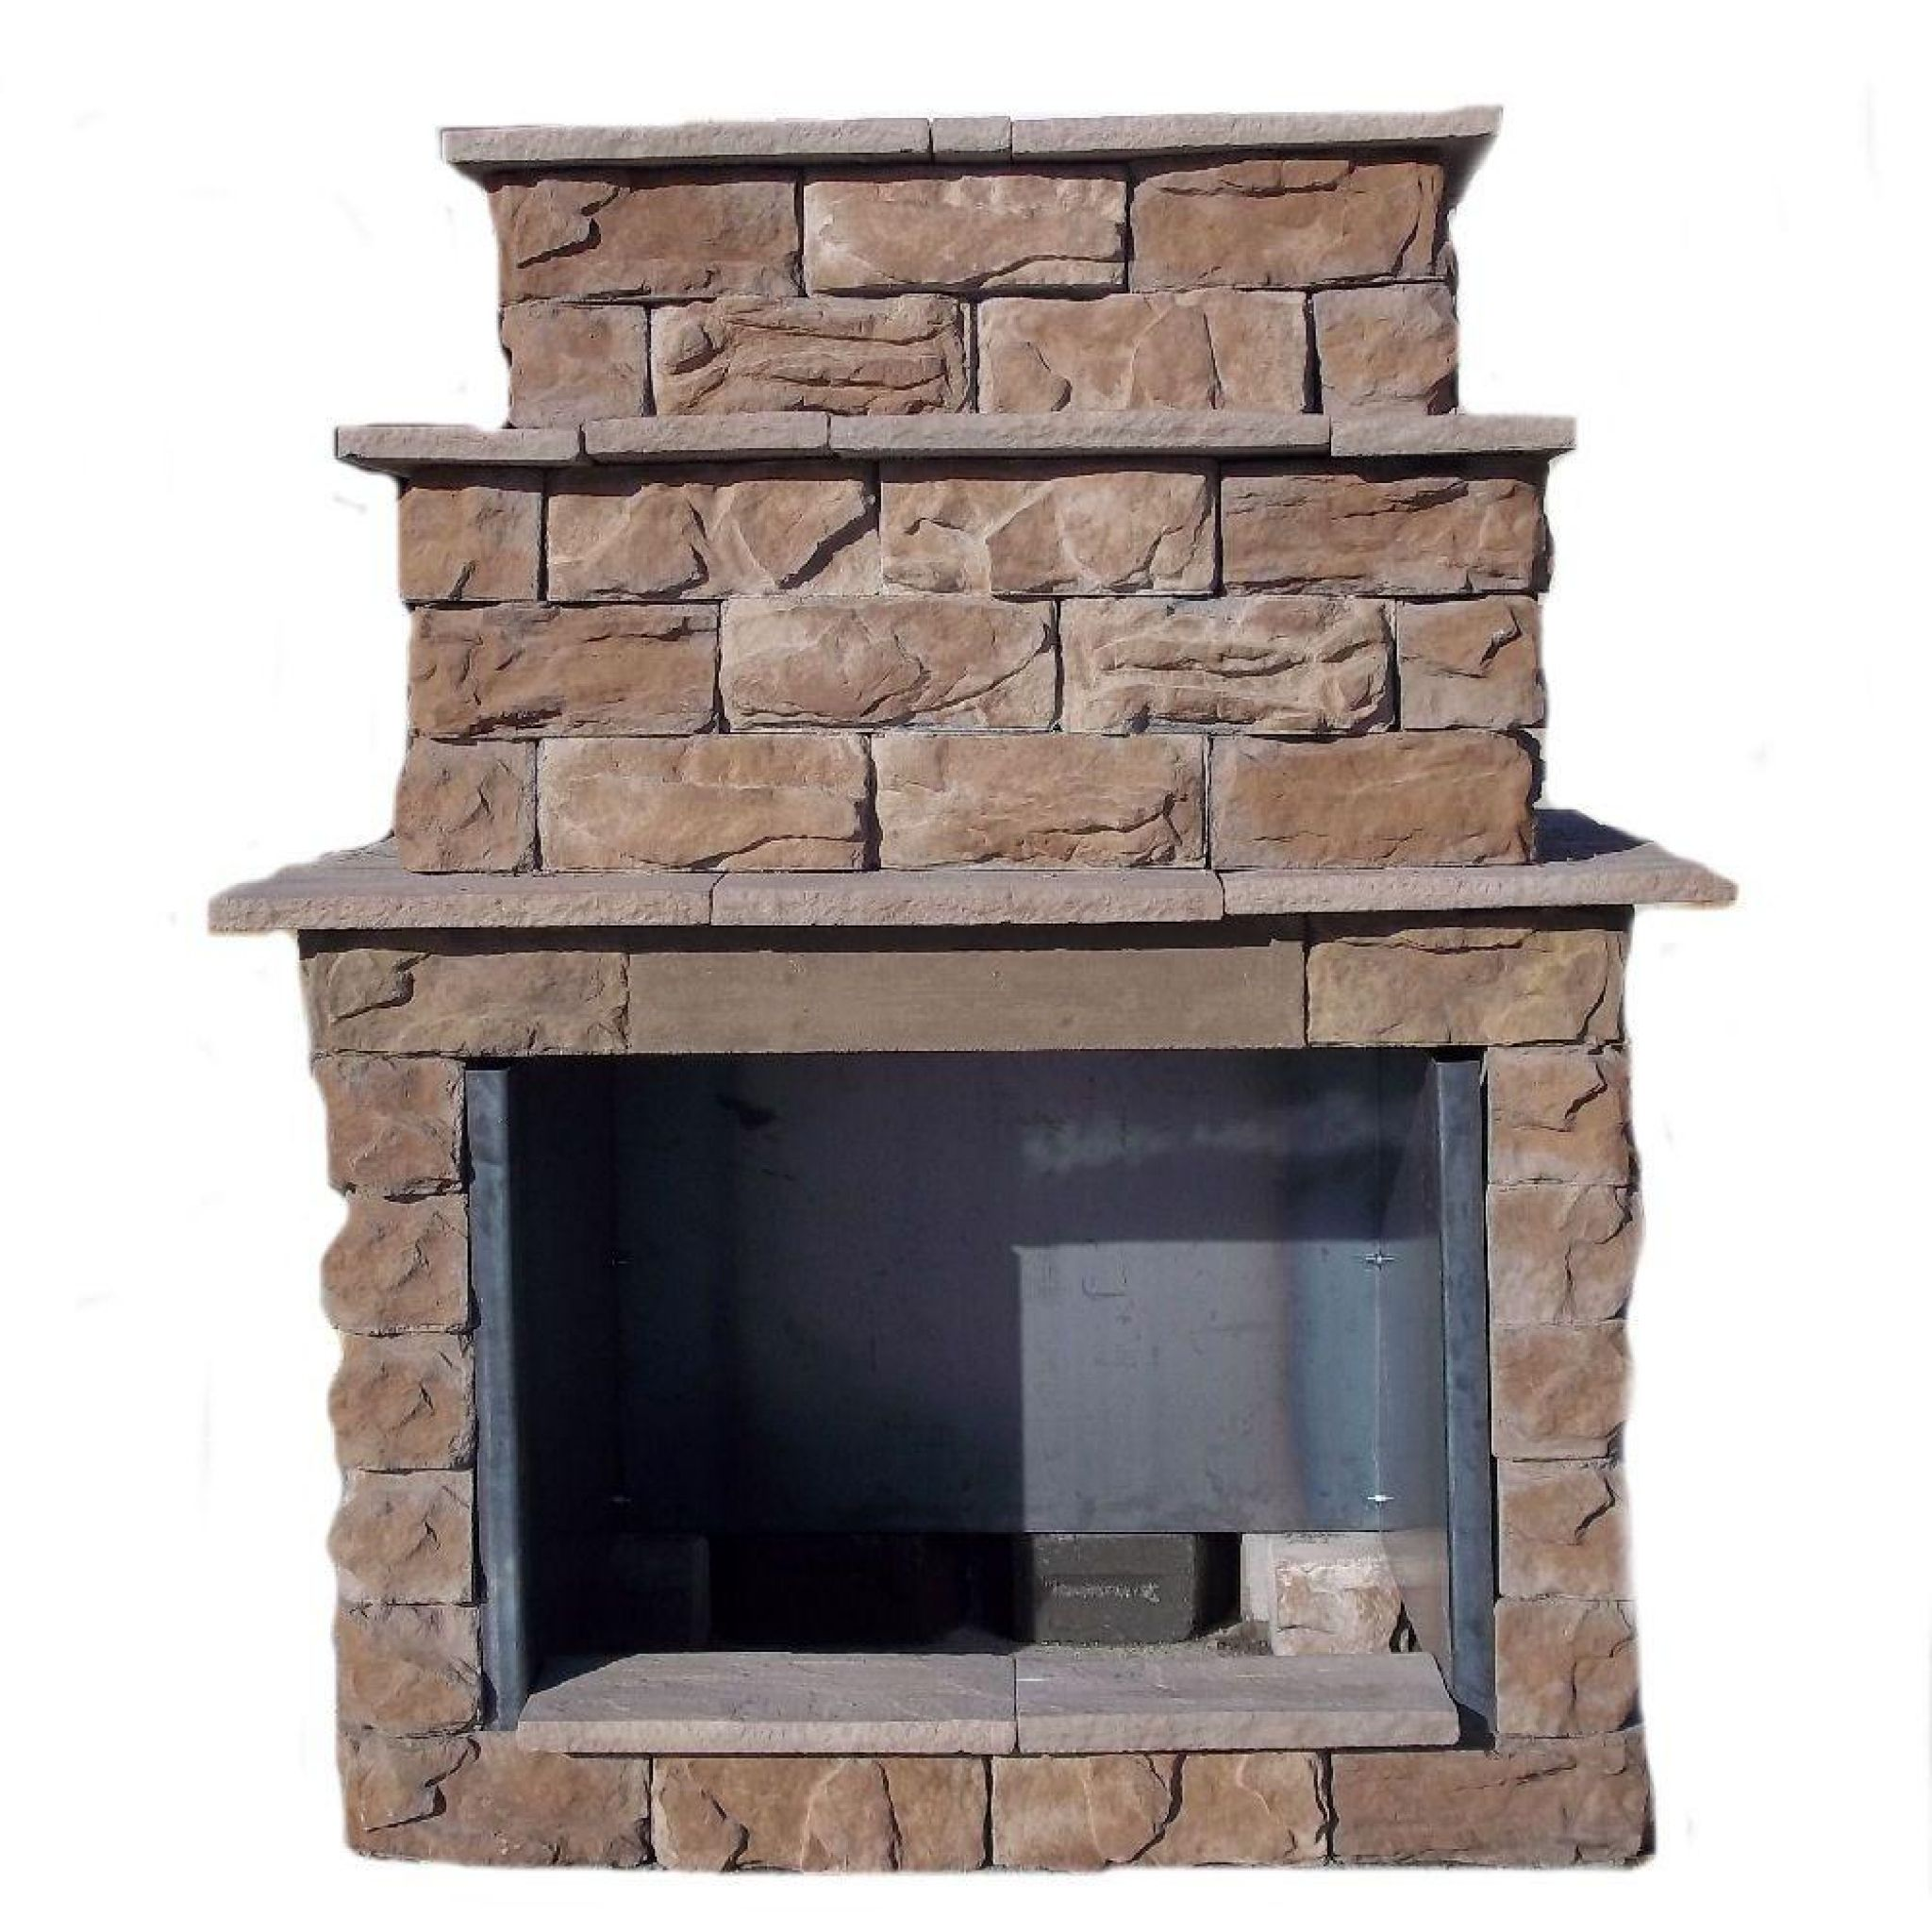 Do it yourself outdoor fireplace kits lowes paint colors interior do it yourself outdoor fireplace kits lowes paint colors interior check more at solutioingenieria Choice Image